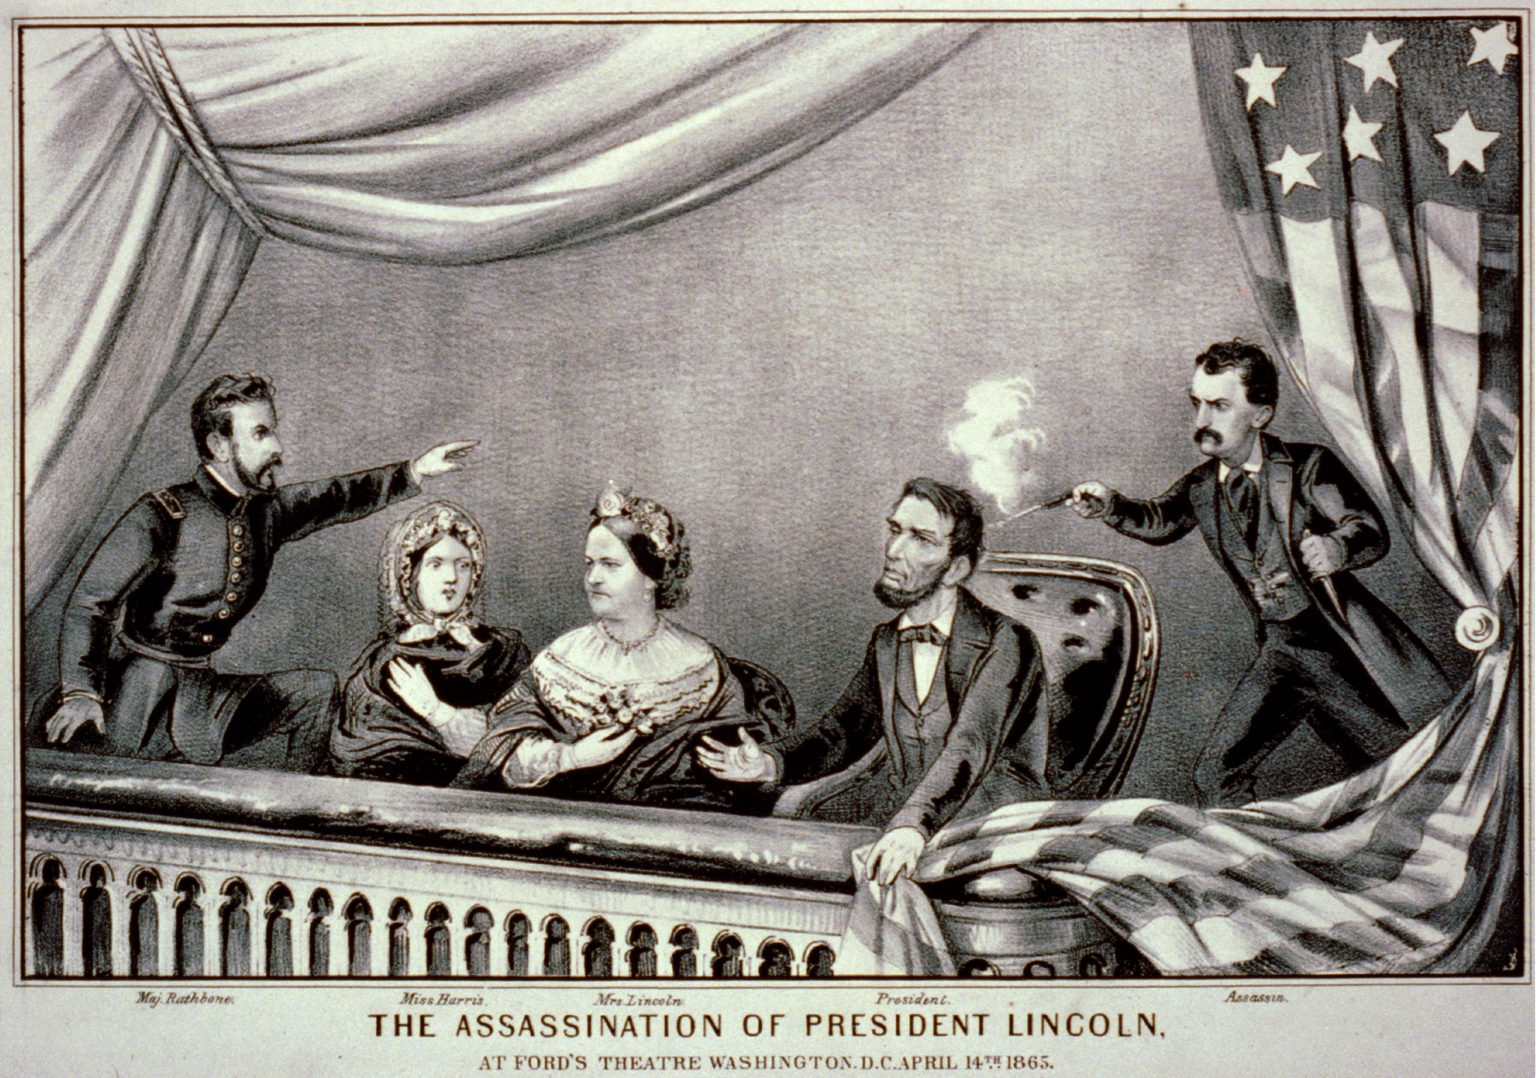 assassination  andrew johnson,andrew johnson assassination attempt,assassination john wilkes booth,assassination abraham lincoln,assassination andrew jackson,